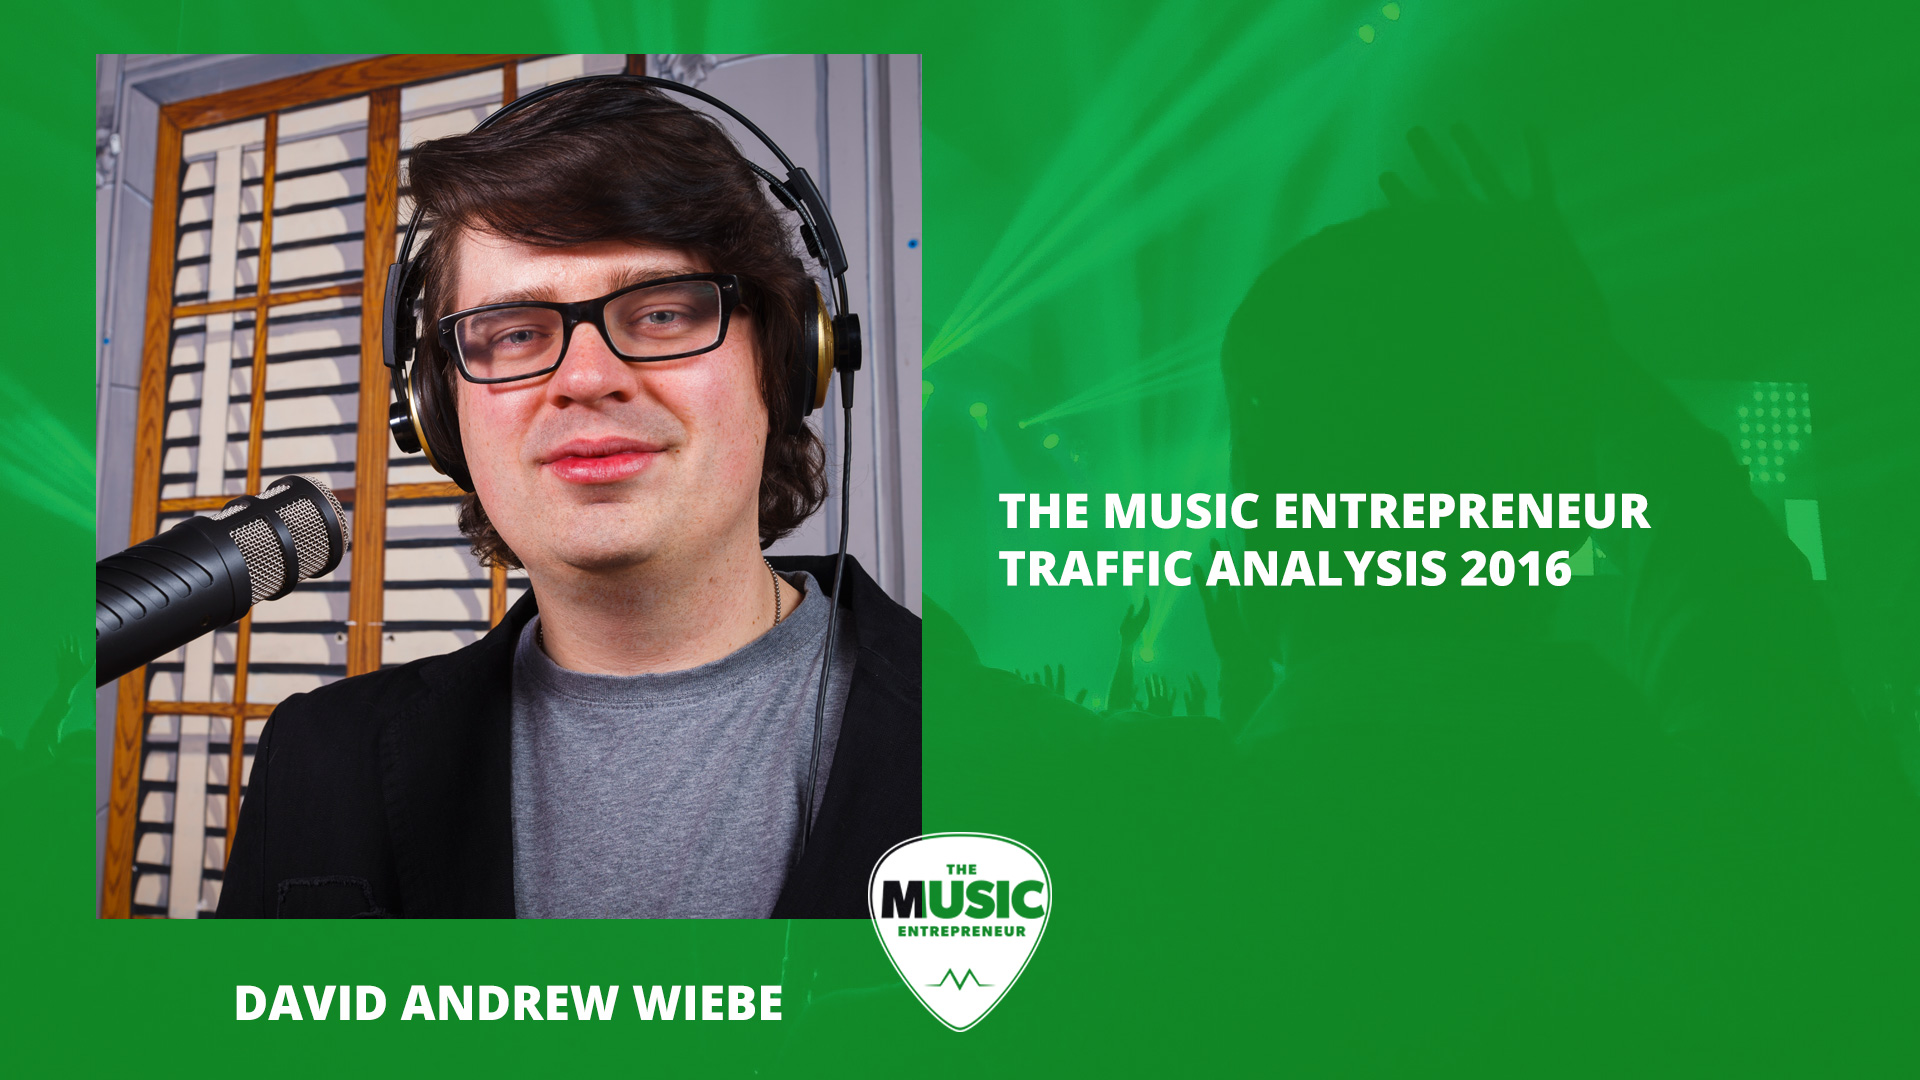 020 – The Music Entrepreneur Traffic Analysis 2016